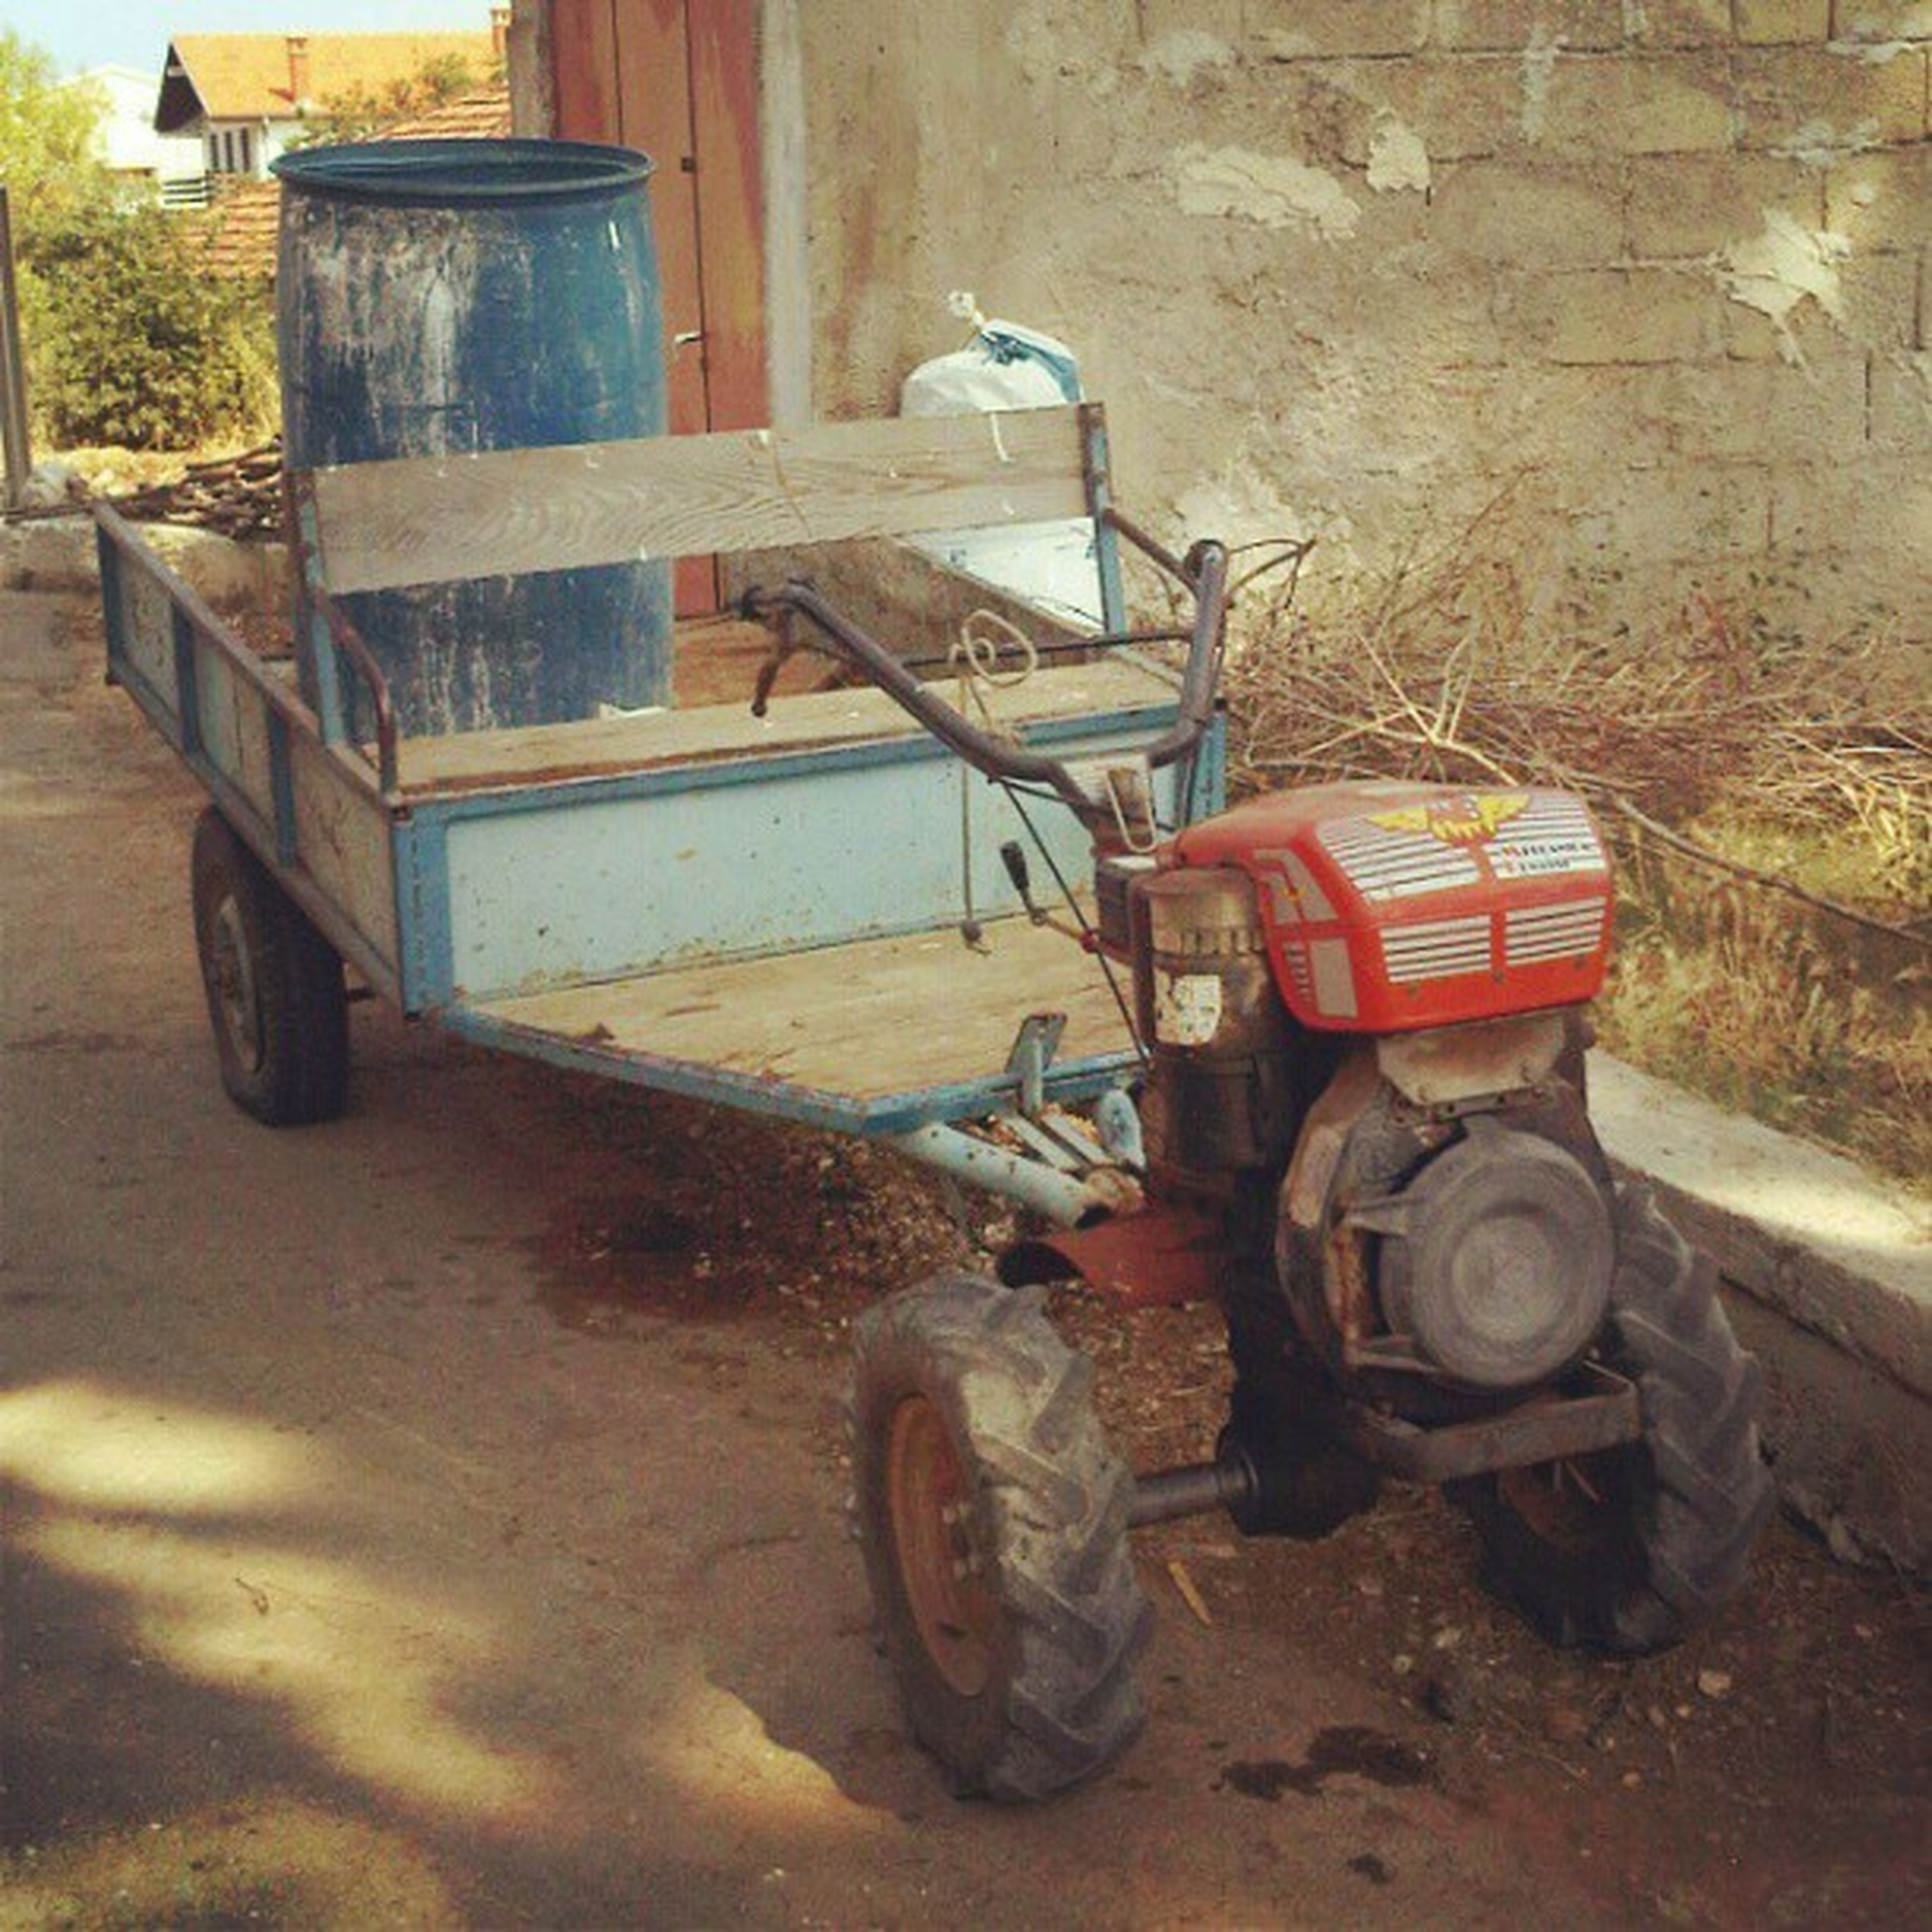 land vehicle, transportation, mode of transport, stationary, abandoned, parking, parked, obsolete, old, damaged, bicycle, building exterior, built structure, architecture, run-down, deterioration, day, house, car, outdoors